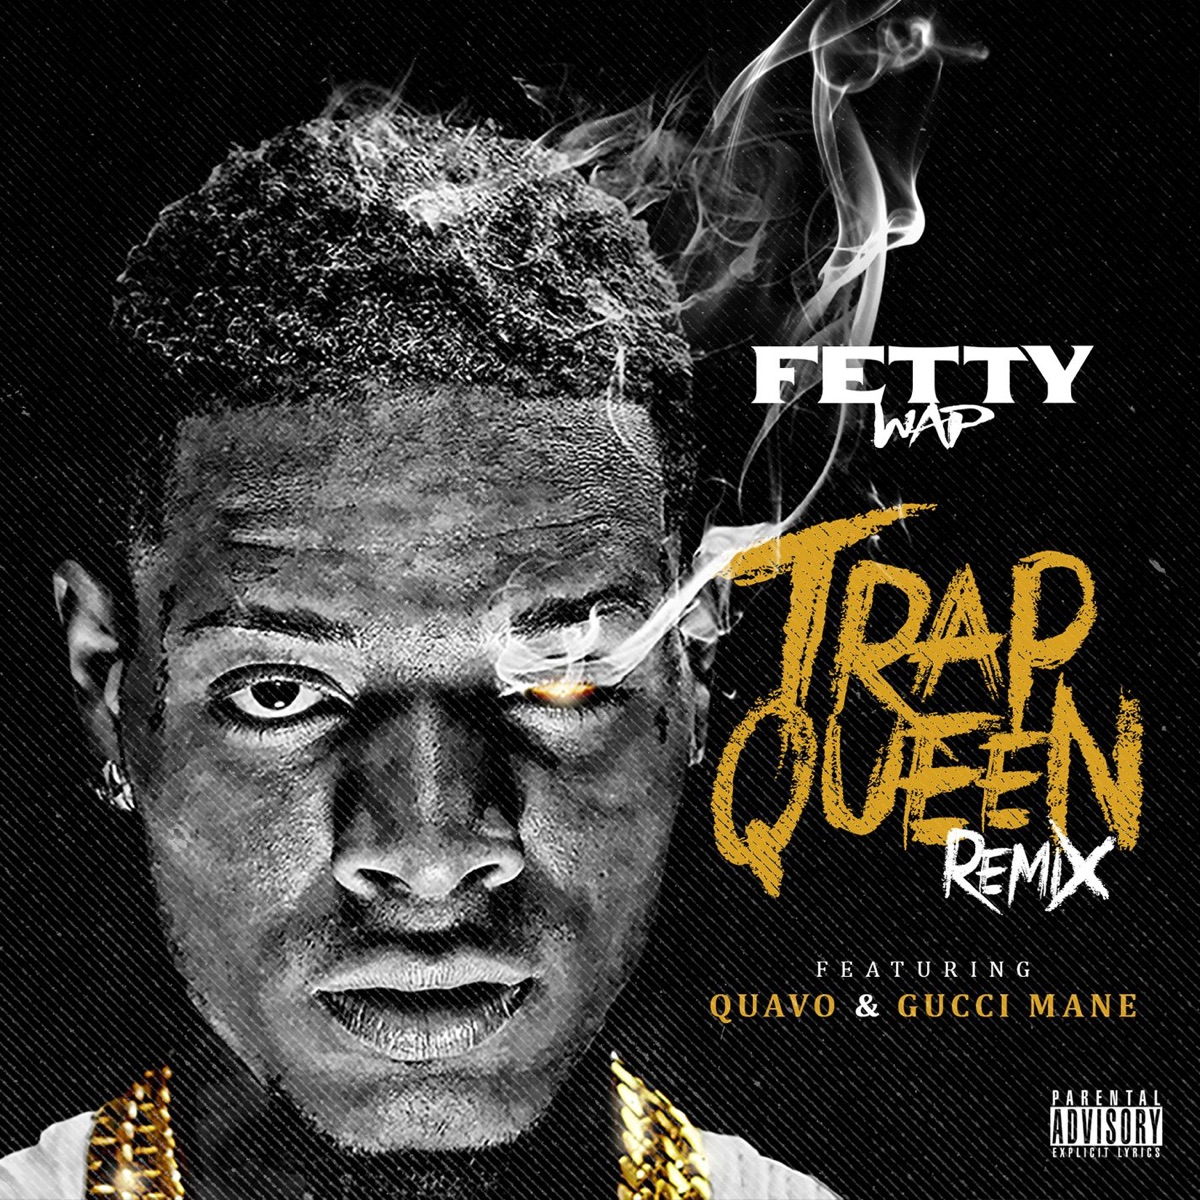 Trap Queen Album Cover by Fetty Wap